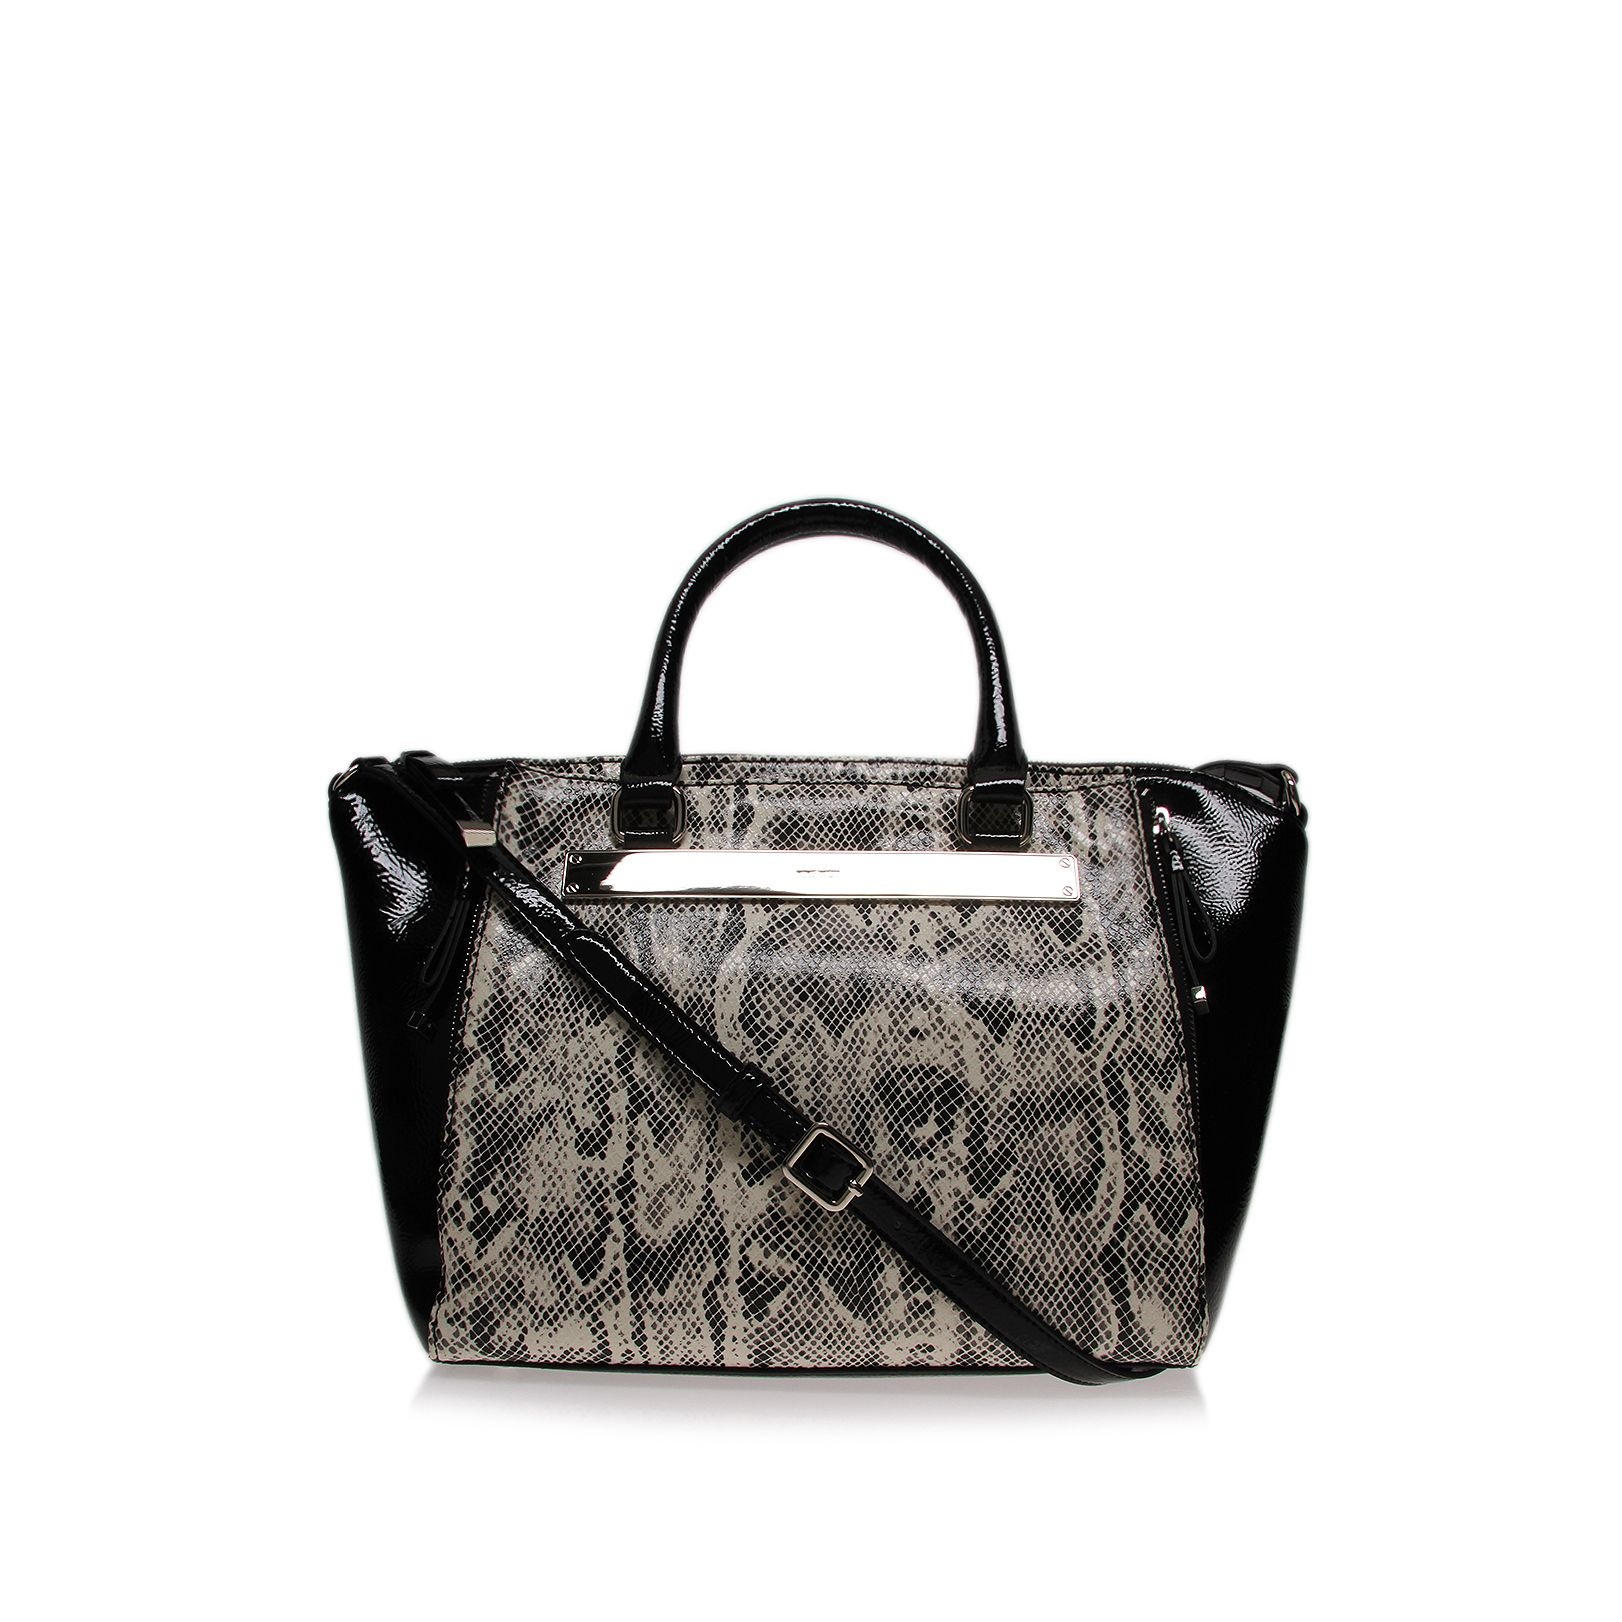 Borderline black and white satchel